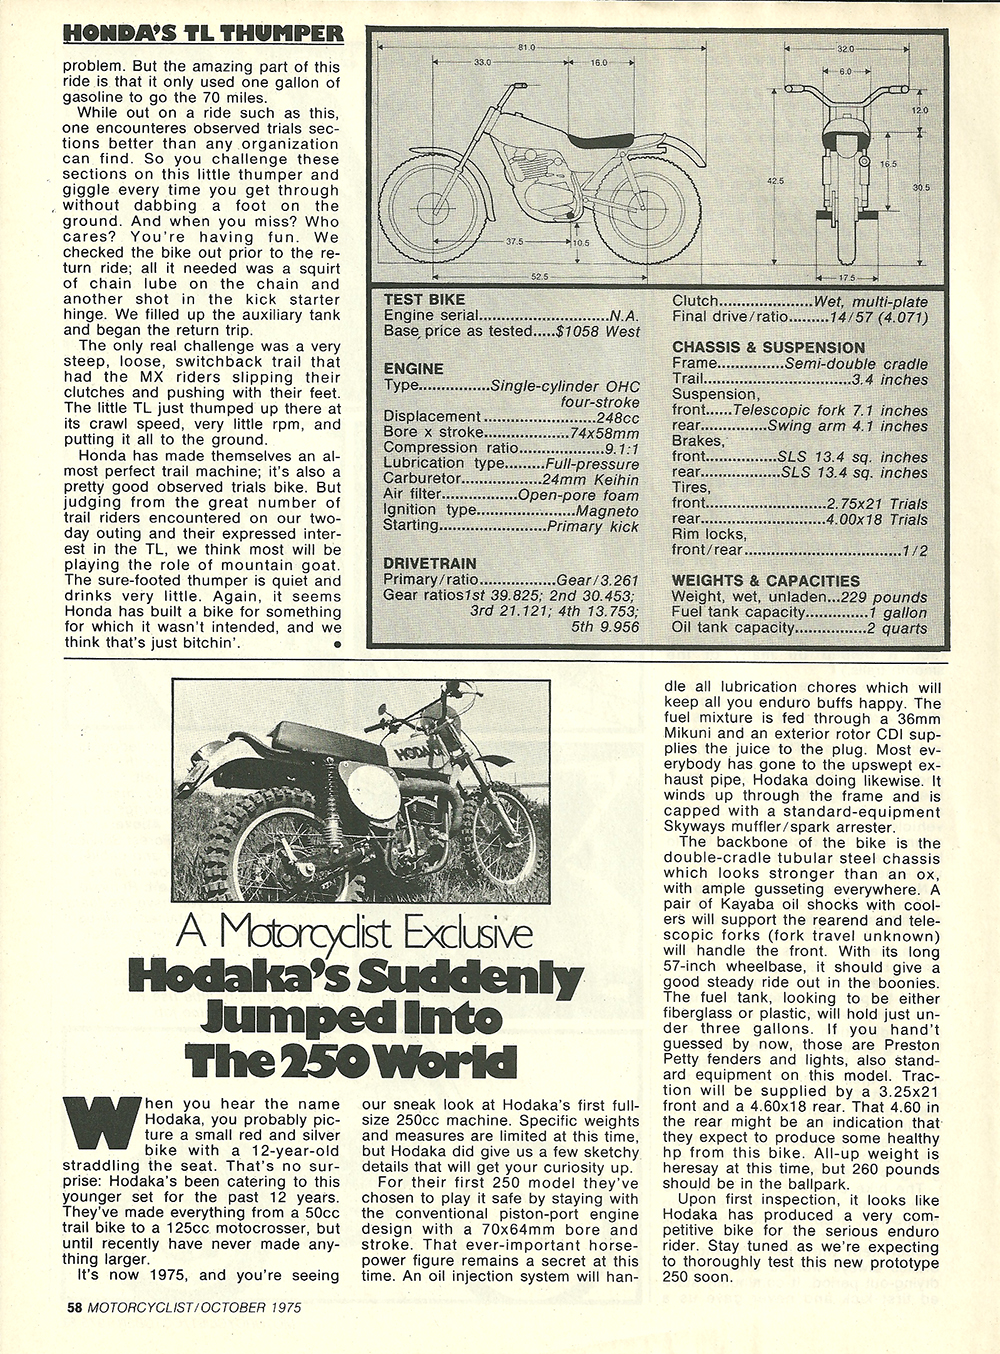 1975 Honda TL250 road test 3.jpg